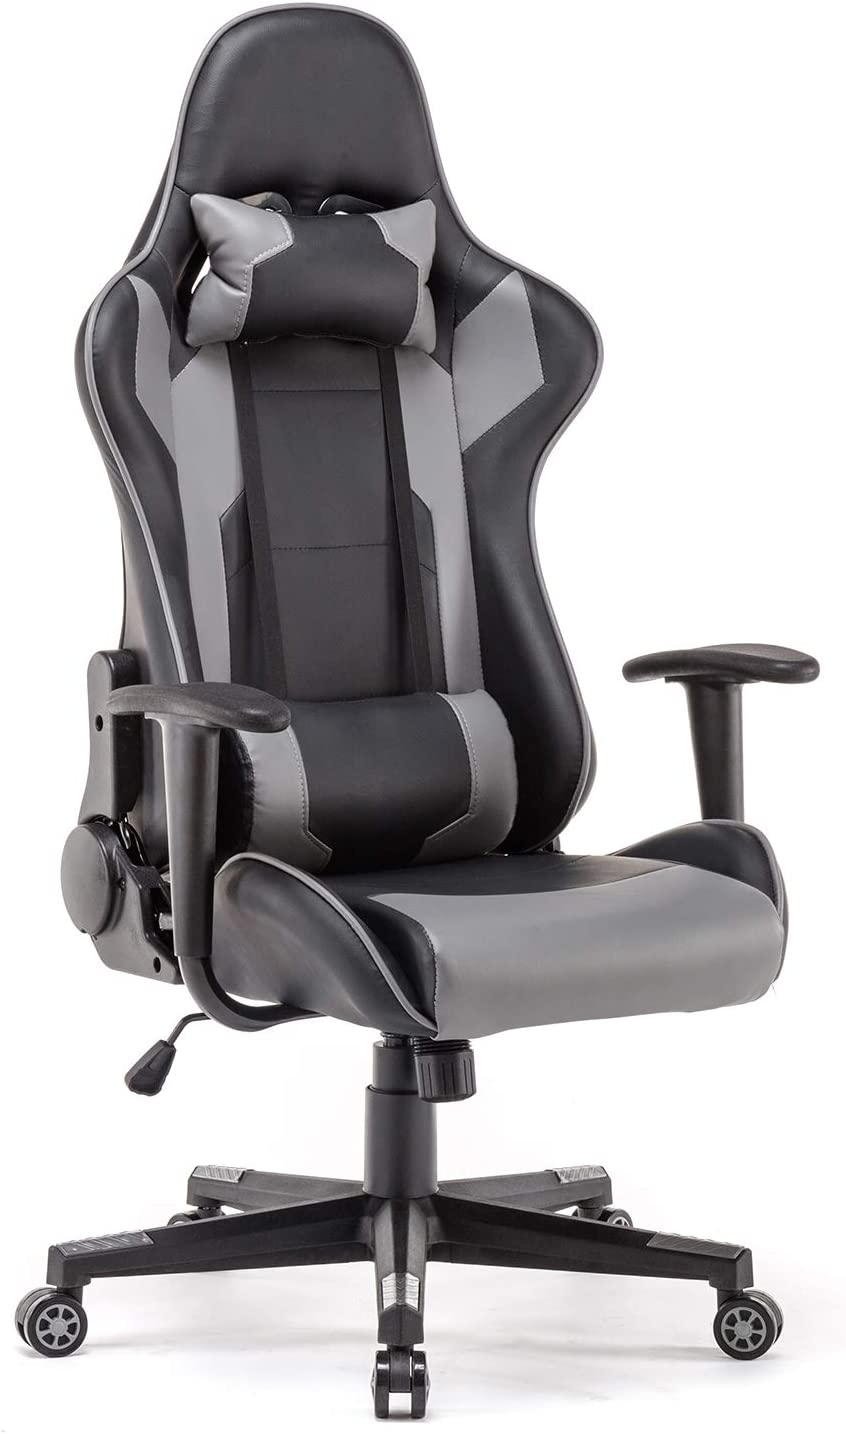 Polar Aurora Gaming Chair Racing Style High-Back PU Leather Office Chair Computer Desk Chair Executive Ergonomic Style Swivel Chair Headrest Lumbar Support Black